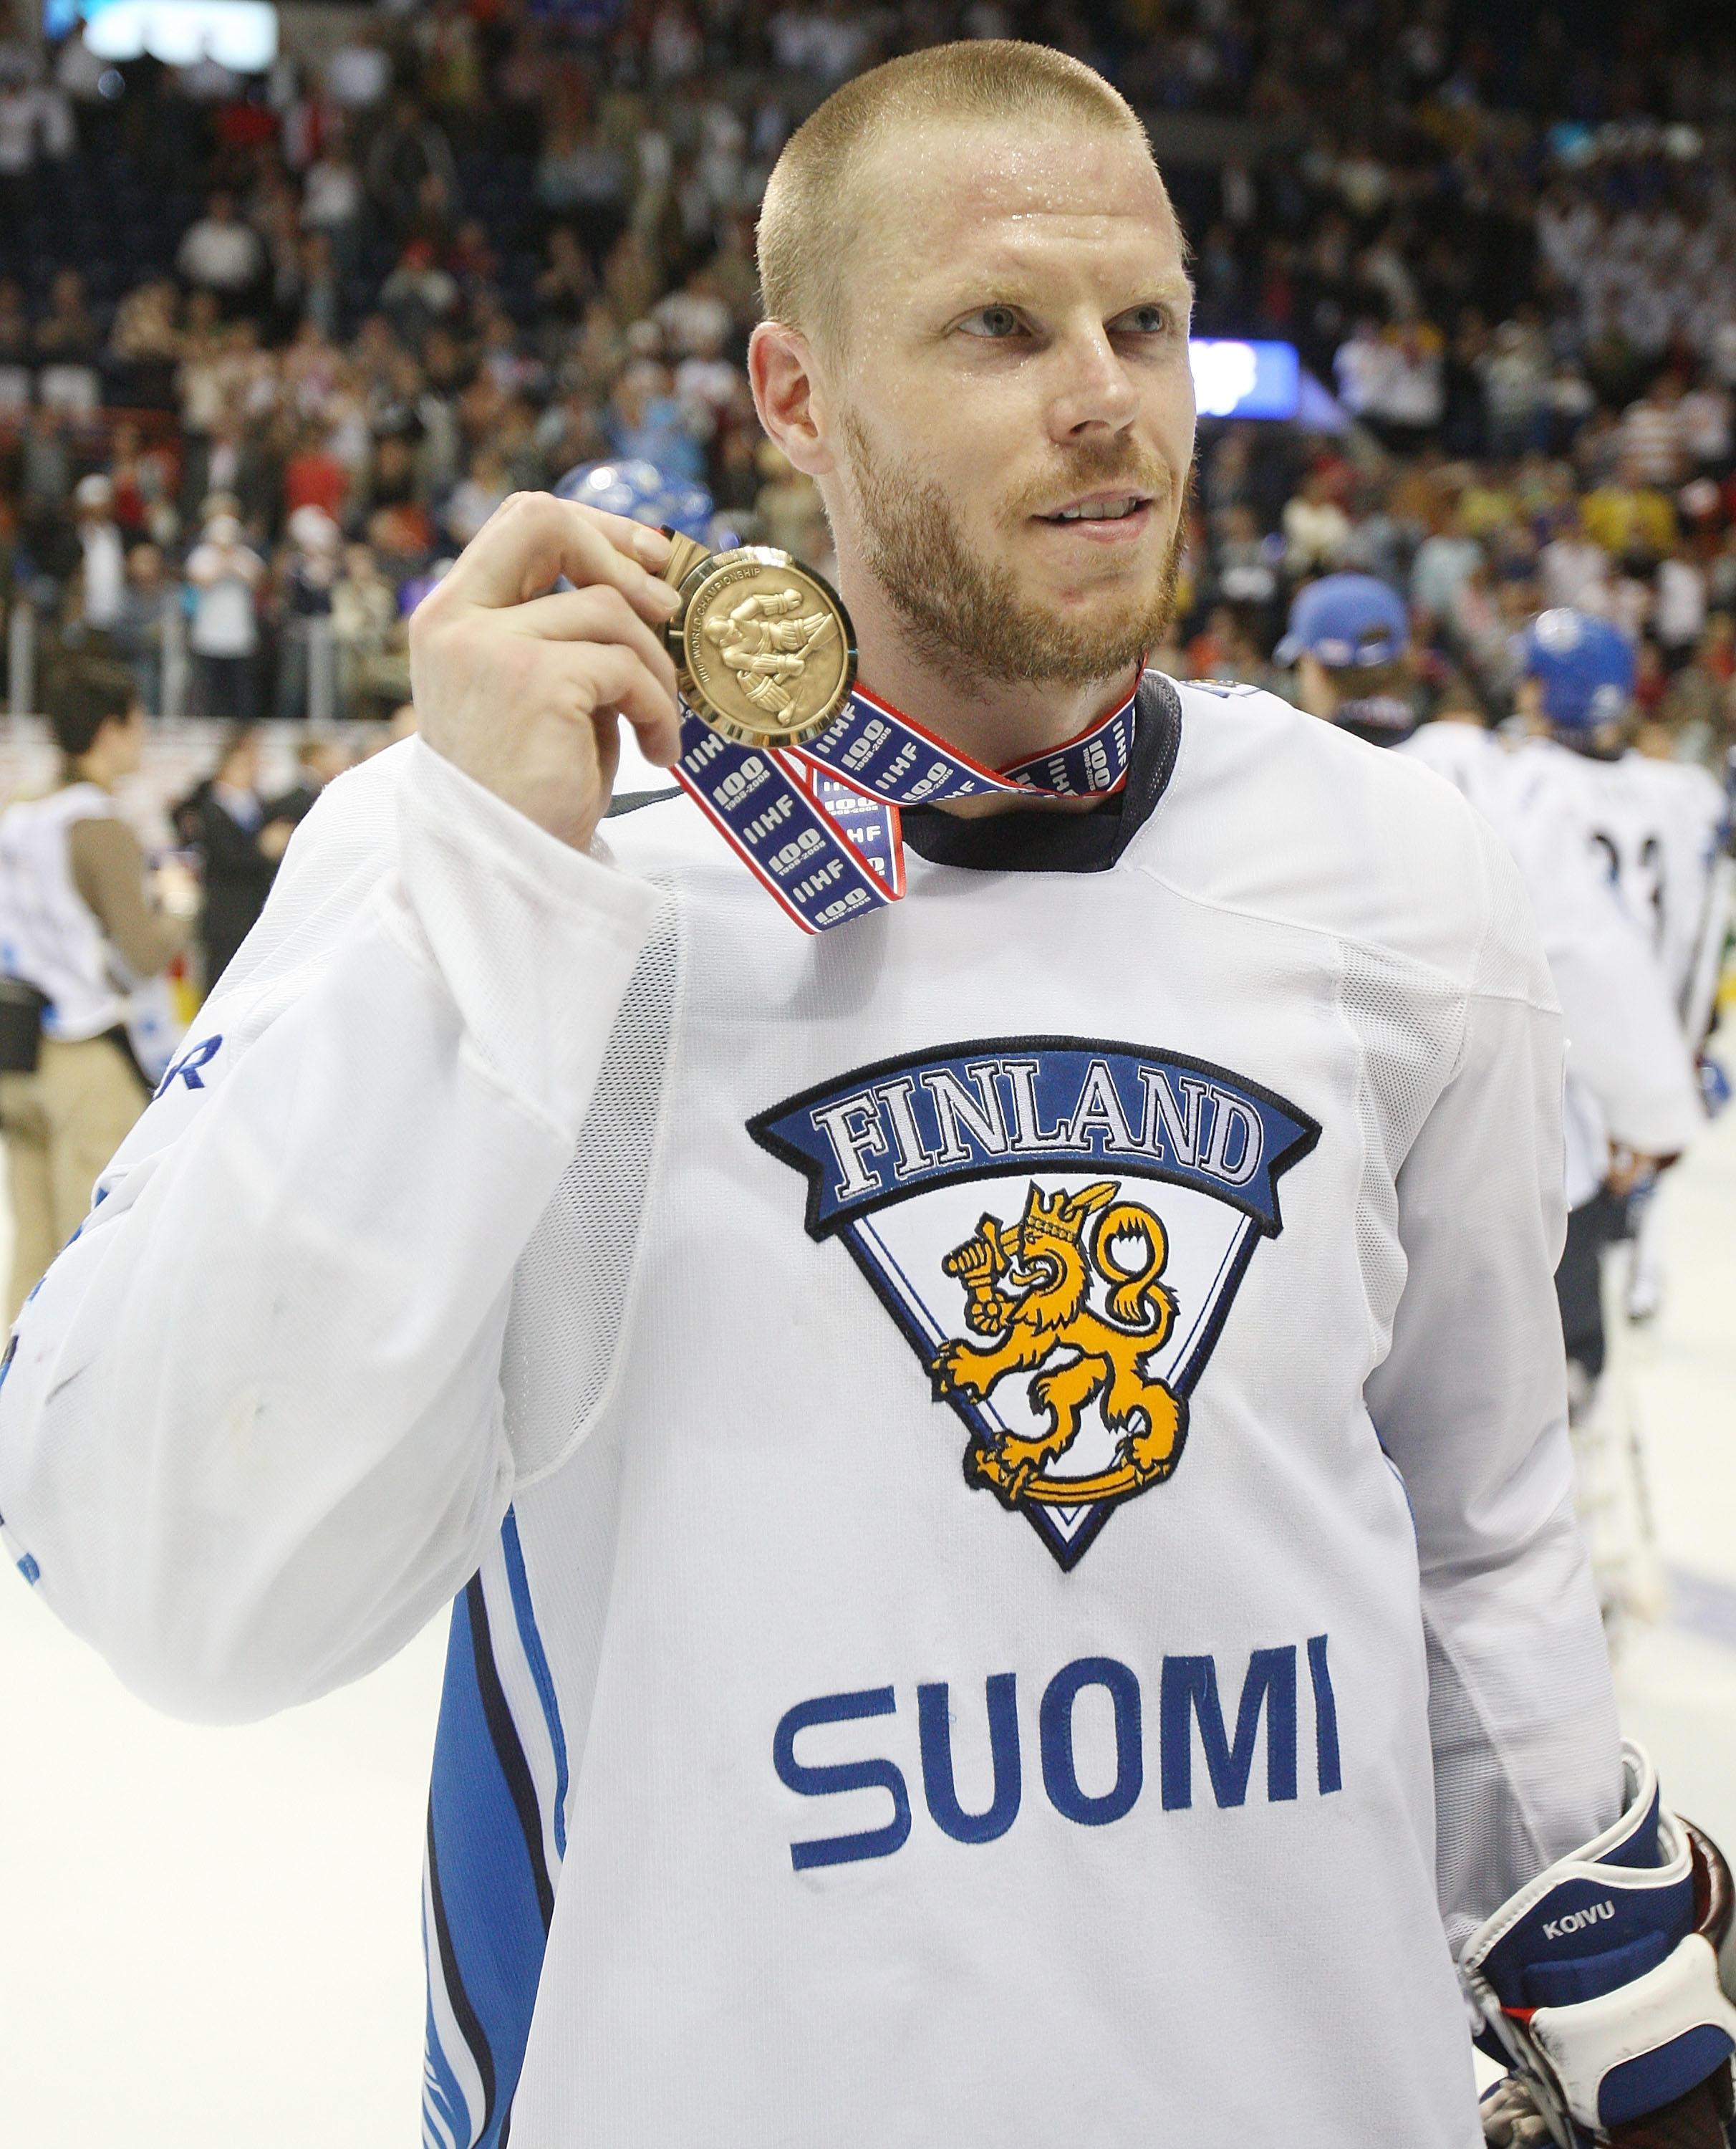 QUEBEC CITY, CANADA - MAY 17: Saku Koivu #11 of Finland shows off his bronze medal after Finland won the Bronze Medal Game of the International Ice Hockey Federation World Championship at the Colisee Pepsi on May 17, 2008 in Quebec City, Canada.  (Photo b